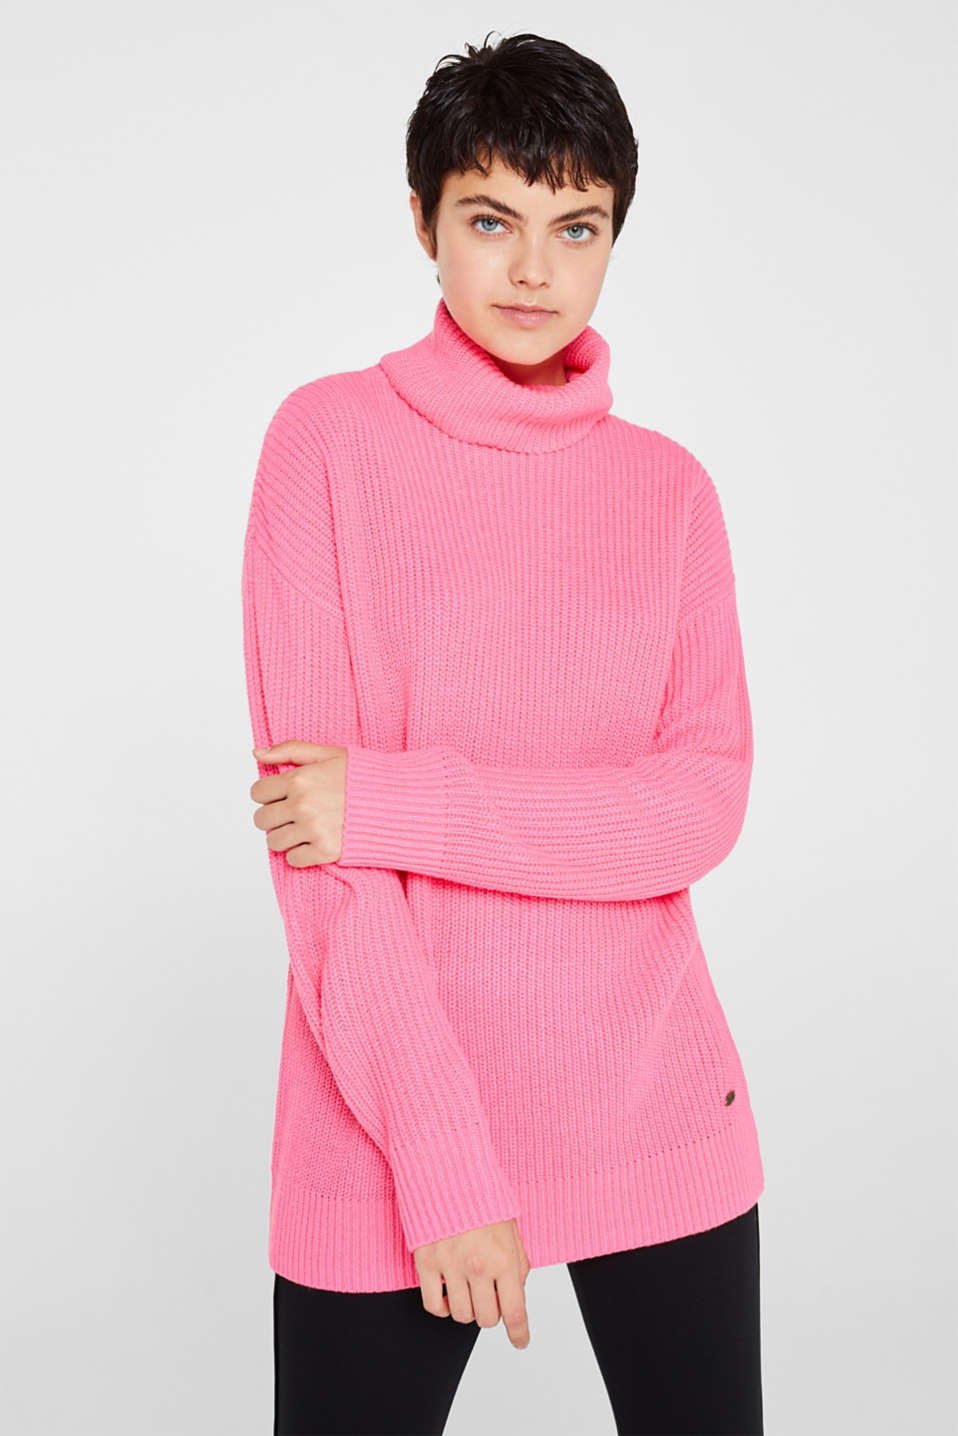 edc - NEON jumper, plain-coloured or with stripes